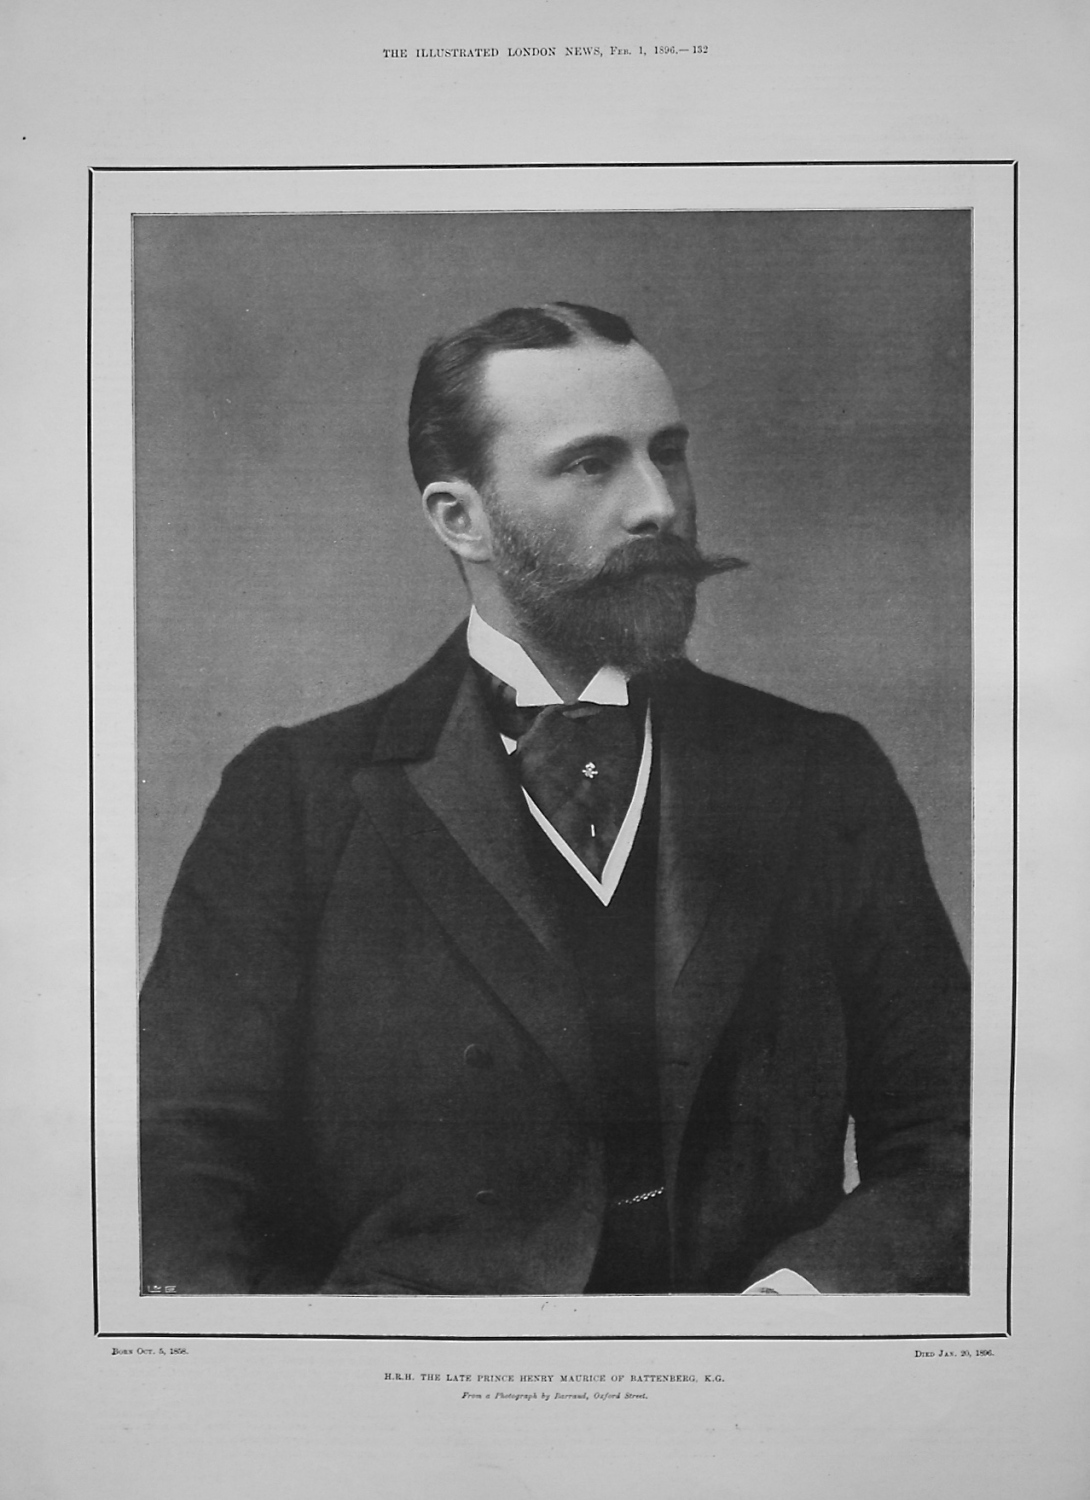 H.R.H. The Late Prince Henry Maurice of Battenberg, K.G.